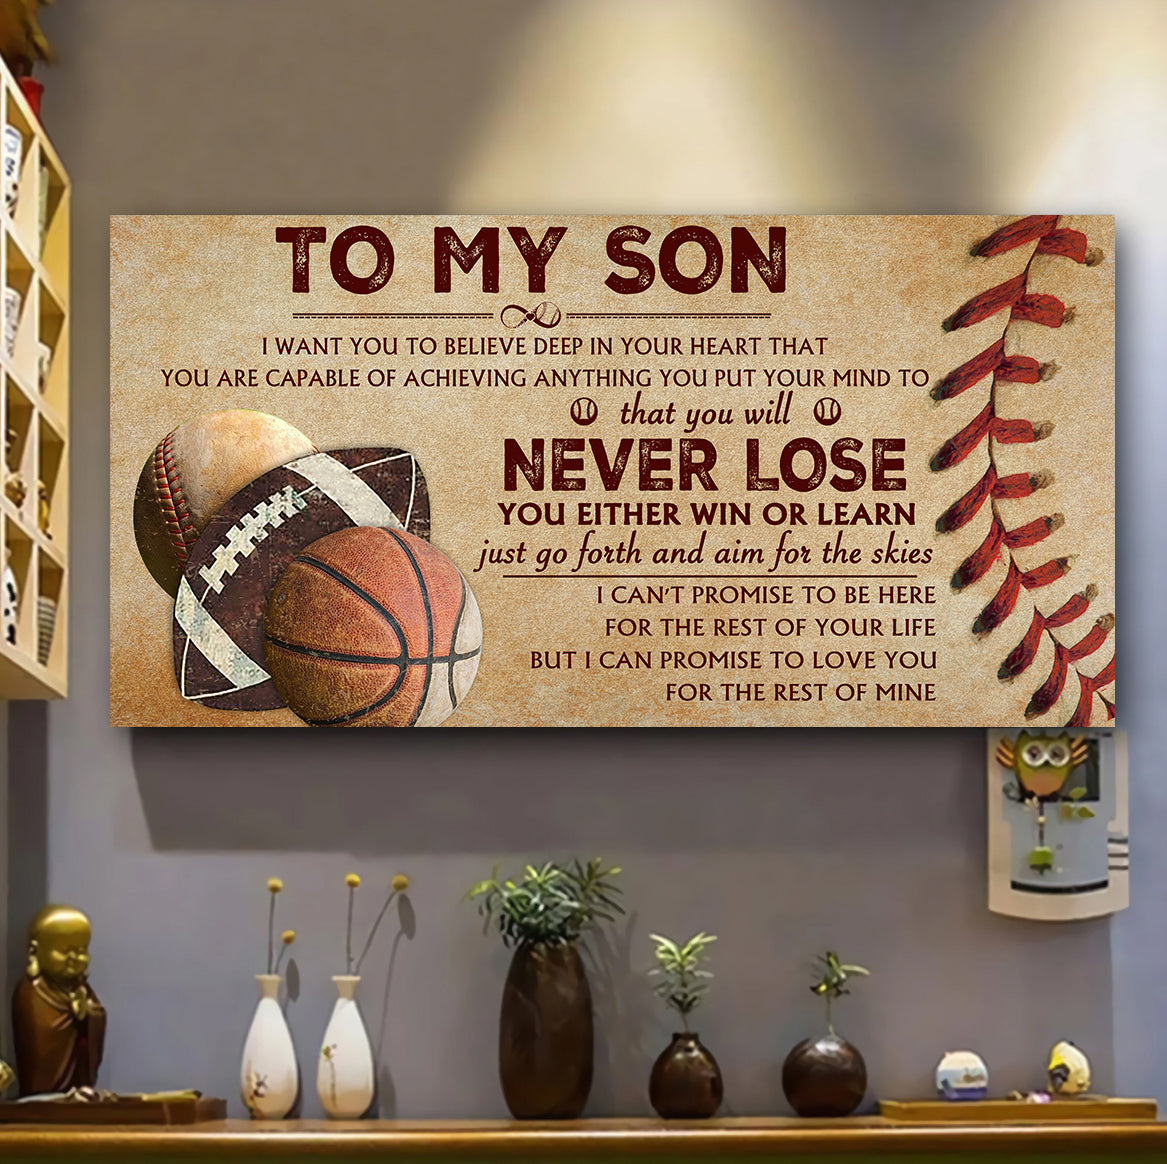 (LP383) Customizable Baseball - Basketball - Football Poster canvas - To my son - Never lose - FREE SHIPPING ON ORDERS OVER $75